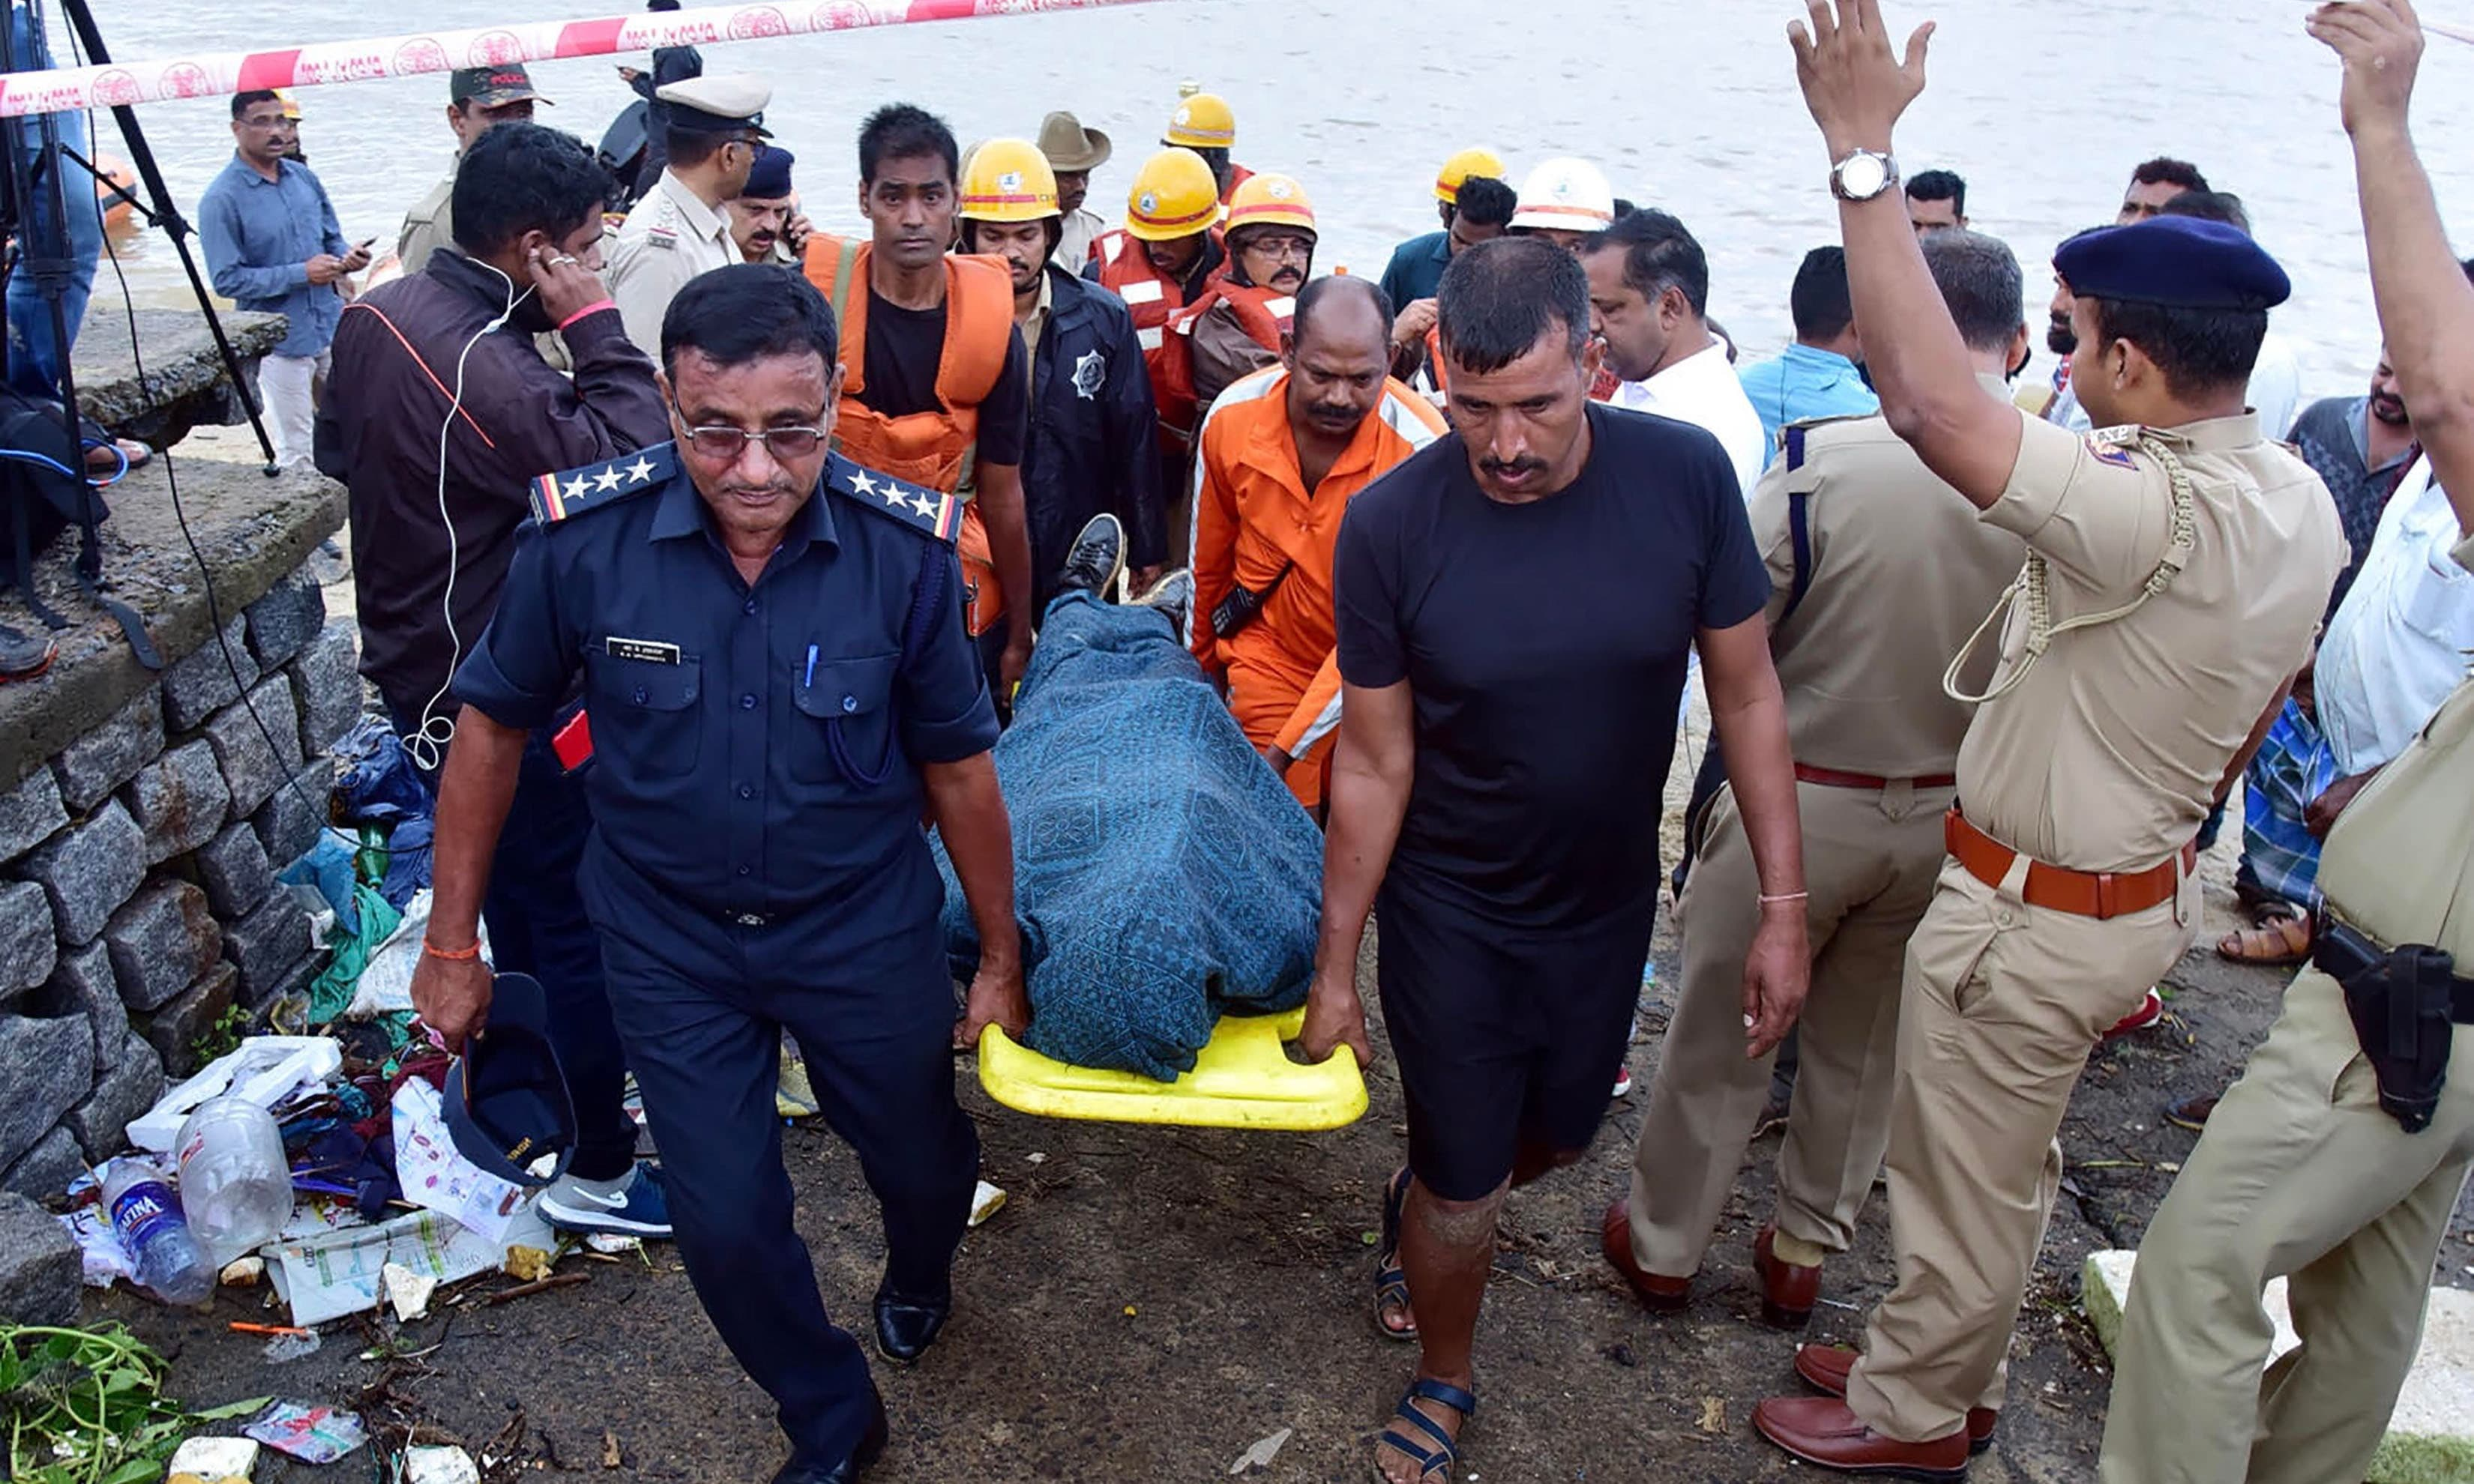 The body will be handed over to the tycoon's family after legal formalities are completed, said Sandeep Patil, Mangaluru police commissioner. — AFP/File